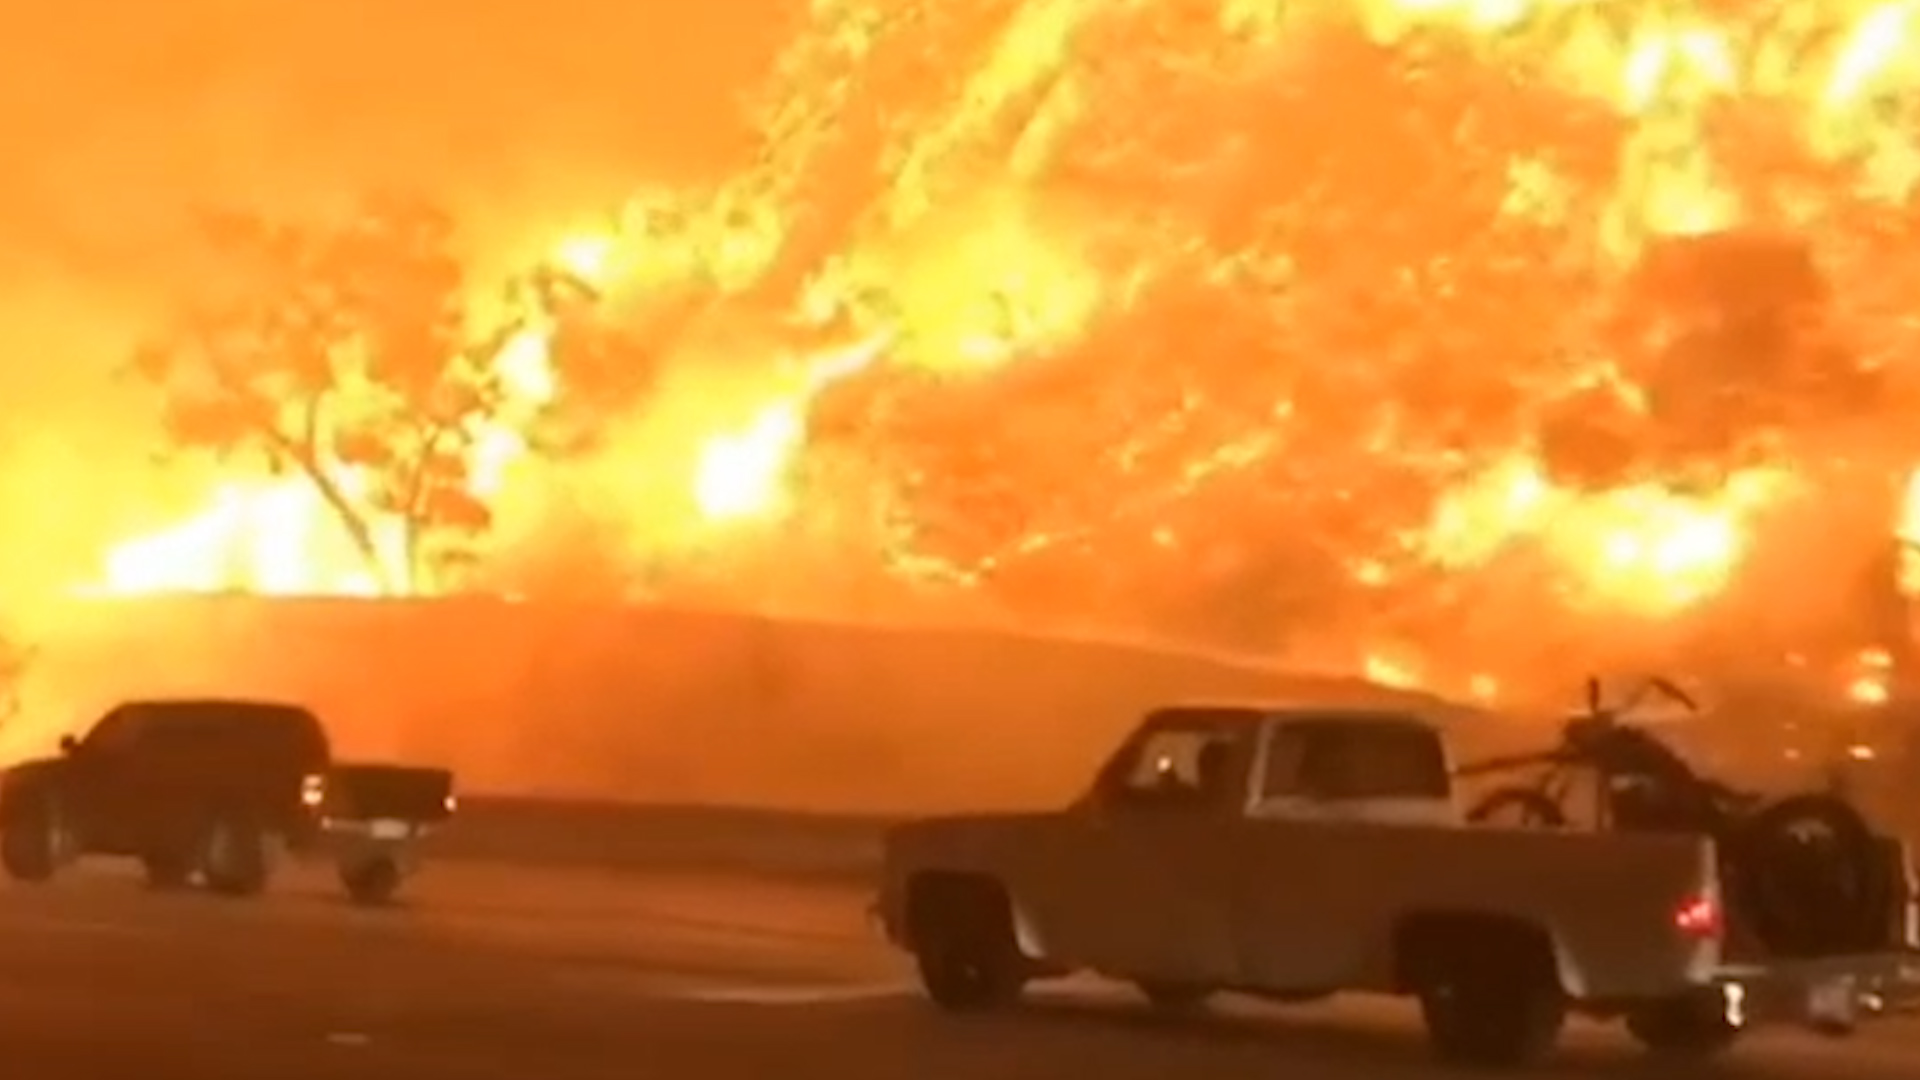 http://cdn.video.nationalgeographic.com/ae/61/a9f24c494c85810b6a2d82d21141/nw-dly-ds1702001-411-drivers-flee-fire-engulfing-california-freeway-vin-spd.jpg